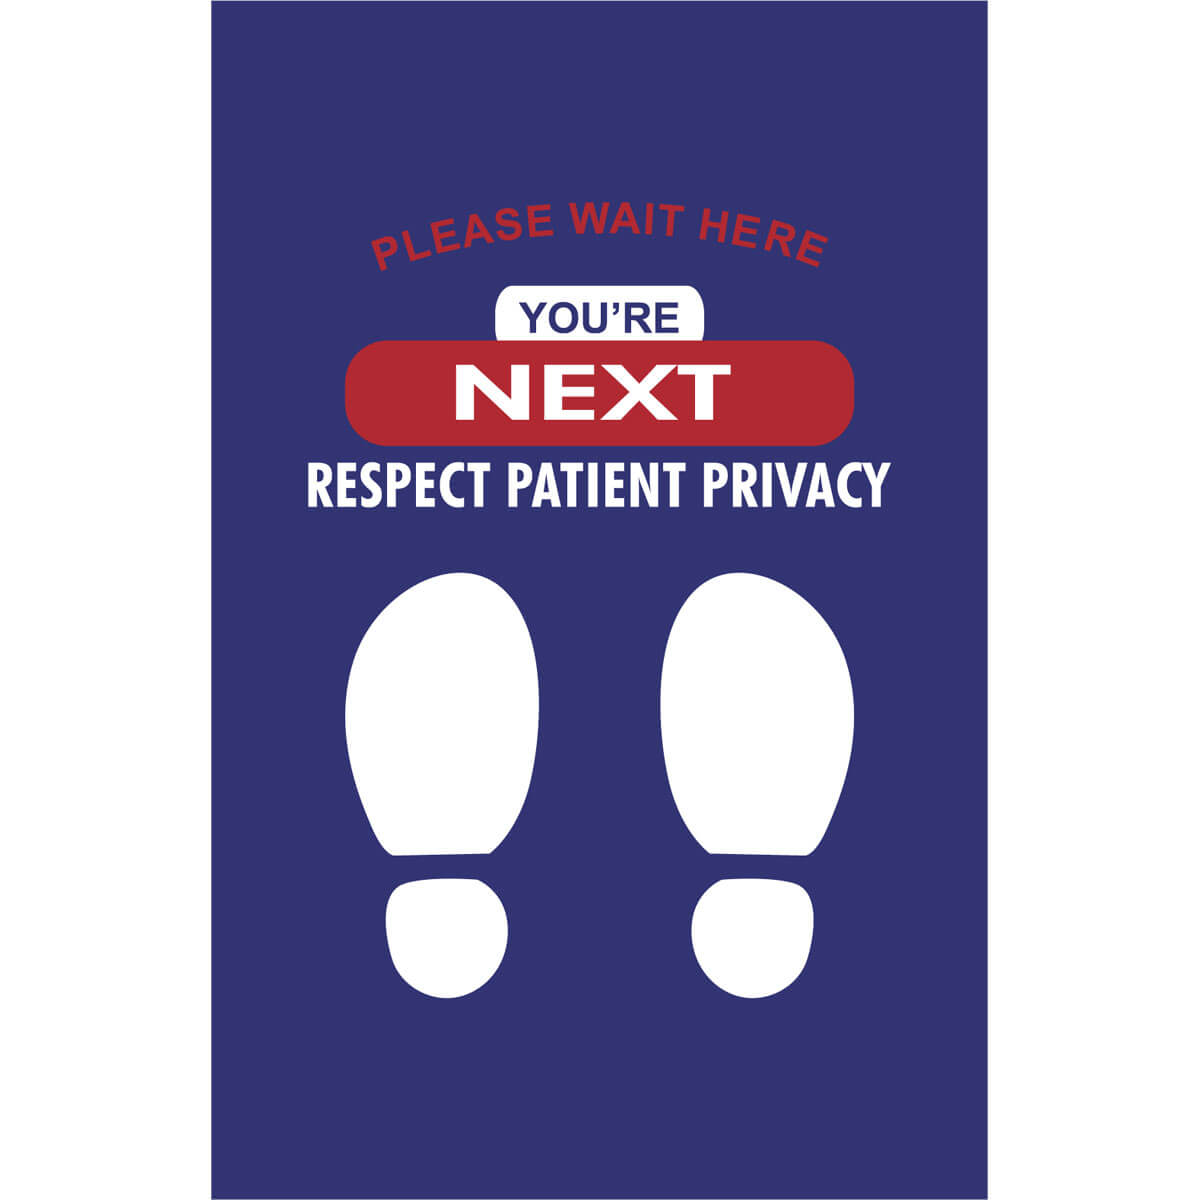 Patient Privacy Wait Here Message Mat  Floormatshopm. Welfare Facility Signs Of Stroke. Viral Signs. Port Signs Of Stroke. January 20 Signs. Periodontal Signs. Bike Path Signs Of Stroke. Autonomic Neuropathy Signs. Parkinson's Disease Signs